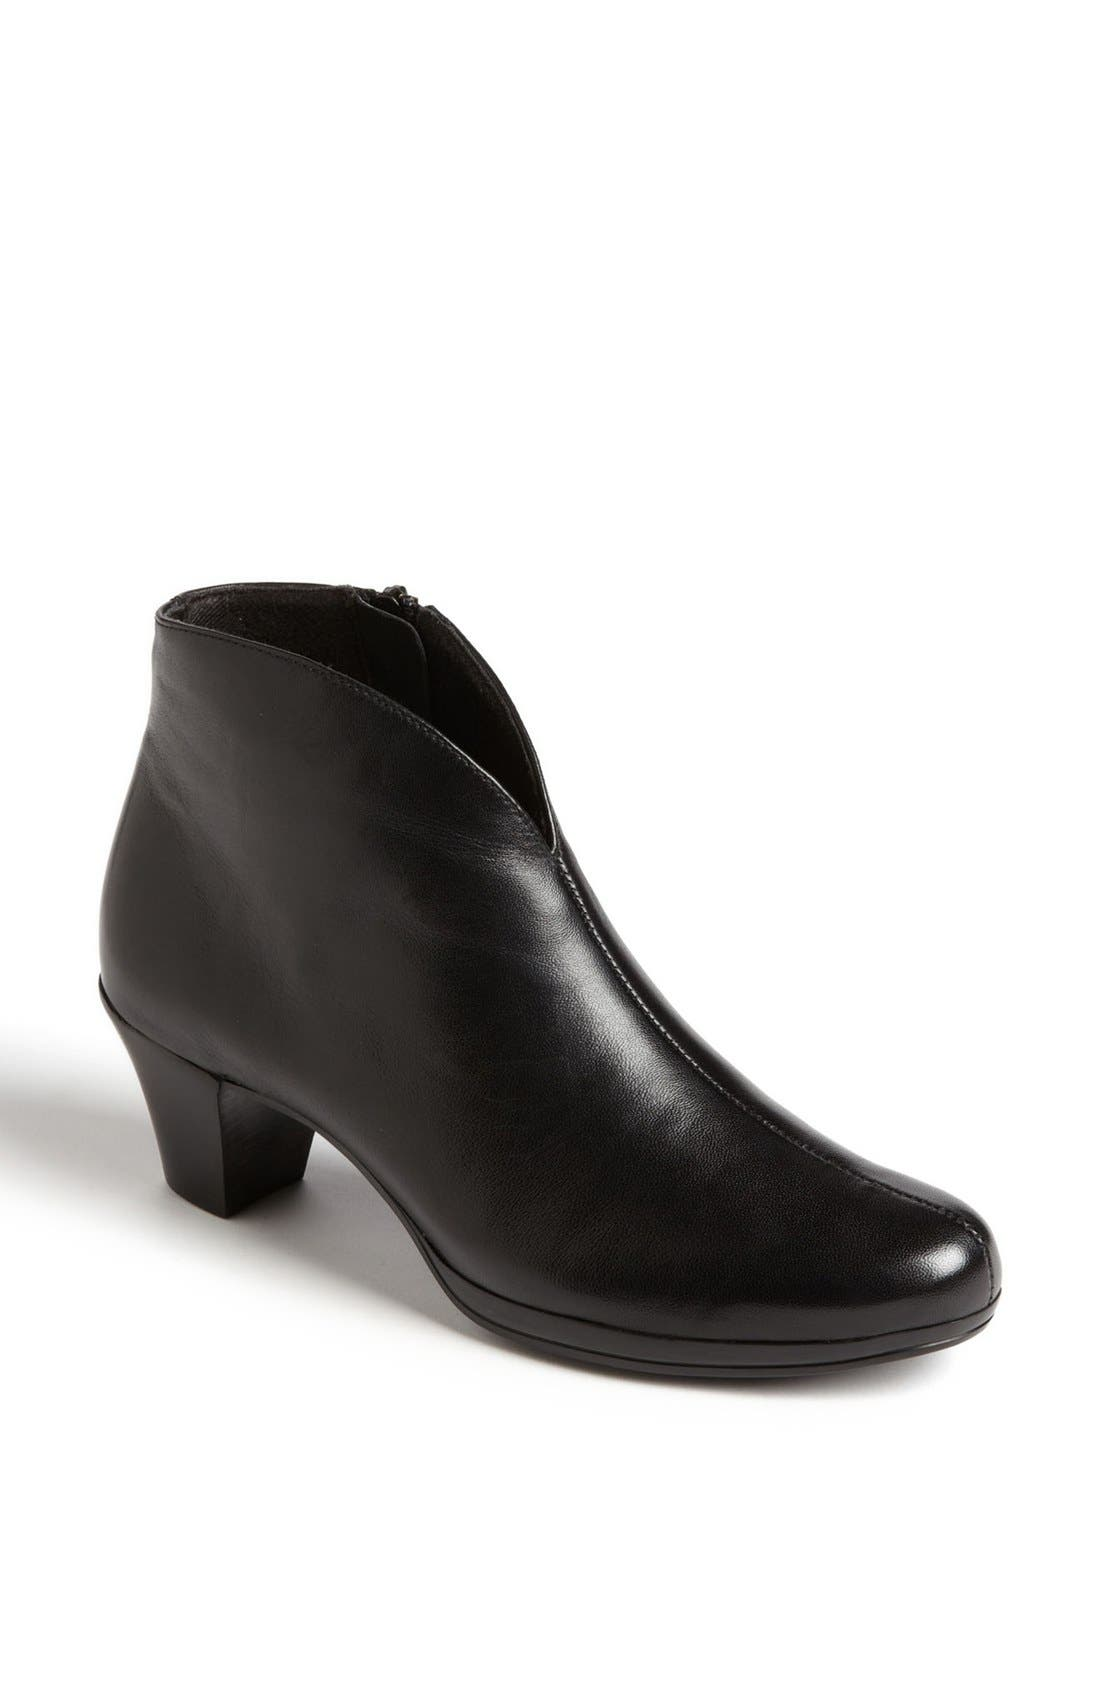 Munro 'Robyn' Boot (Women) (Online Only)